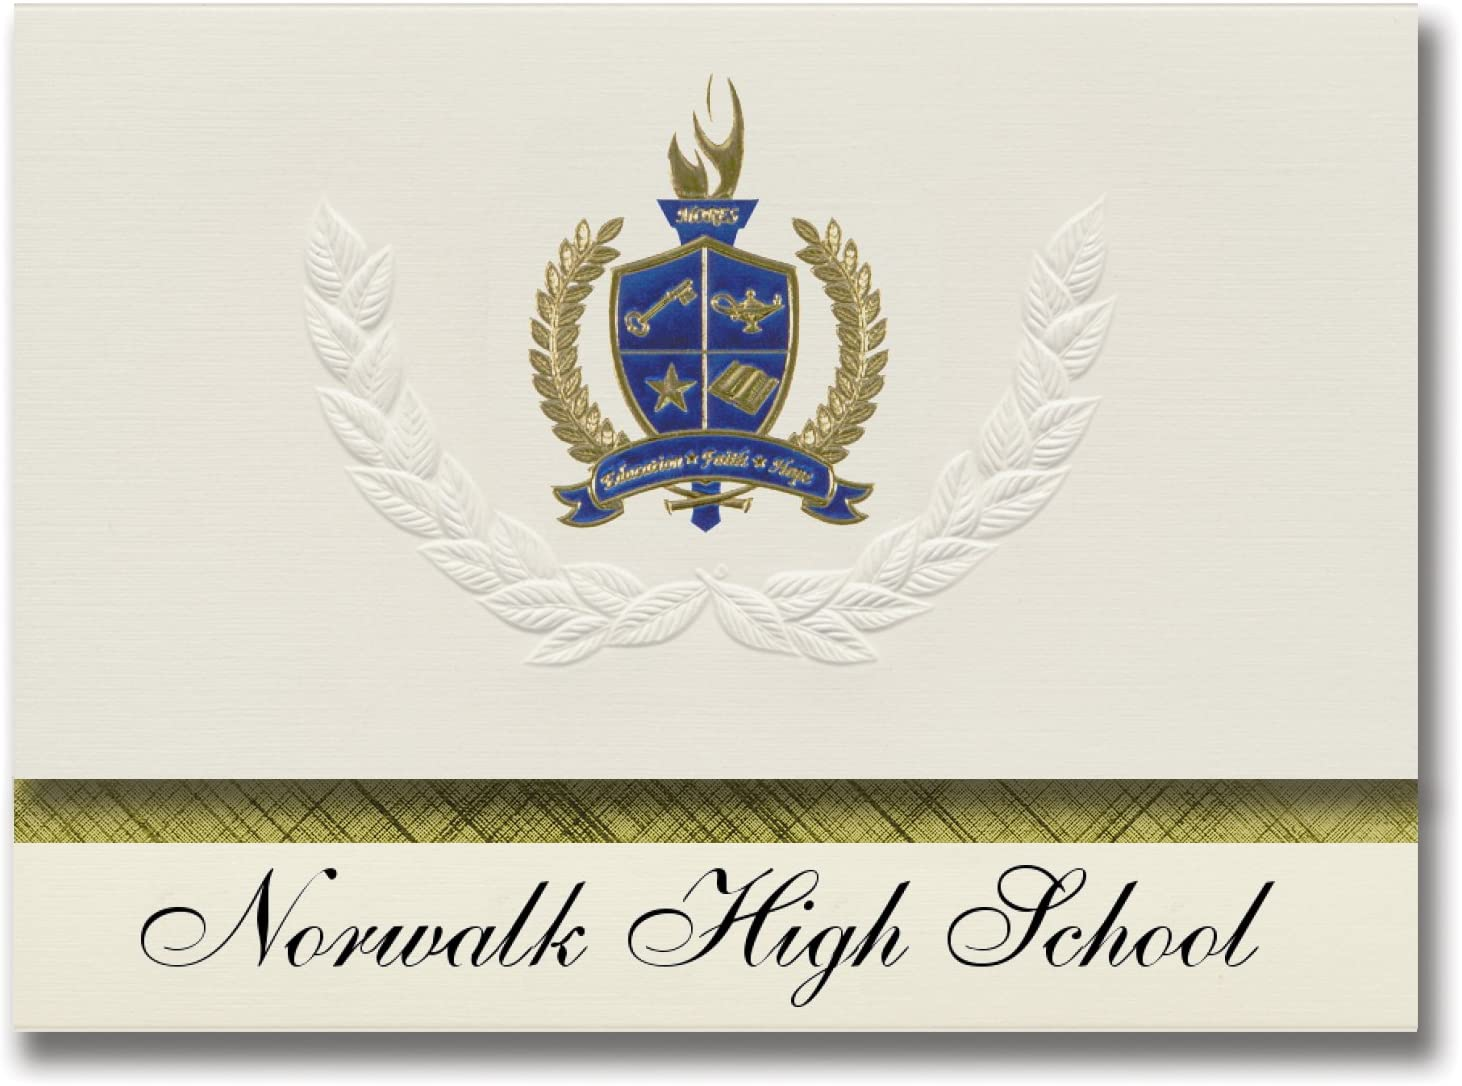 Signature Announcements Norwalk High School (Norwalk, CT) Graduation Announcements, Presidential style, Basic package of 25 with Gold & Blue Metallic Foil seal